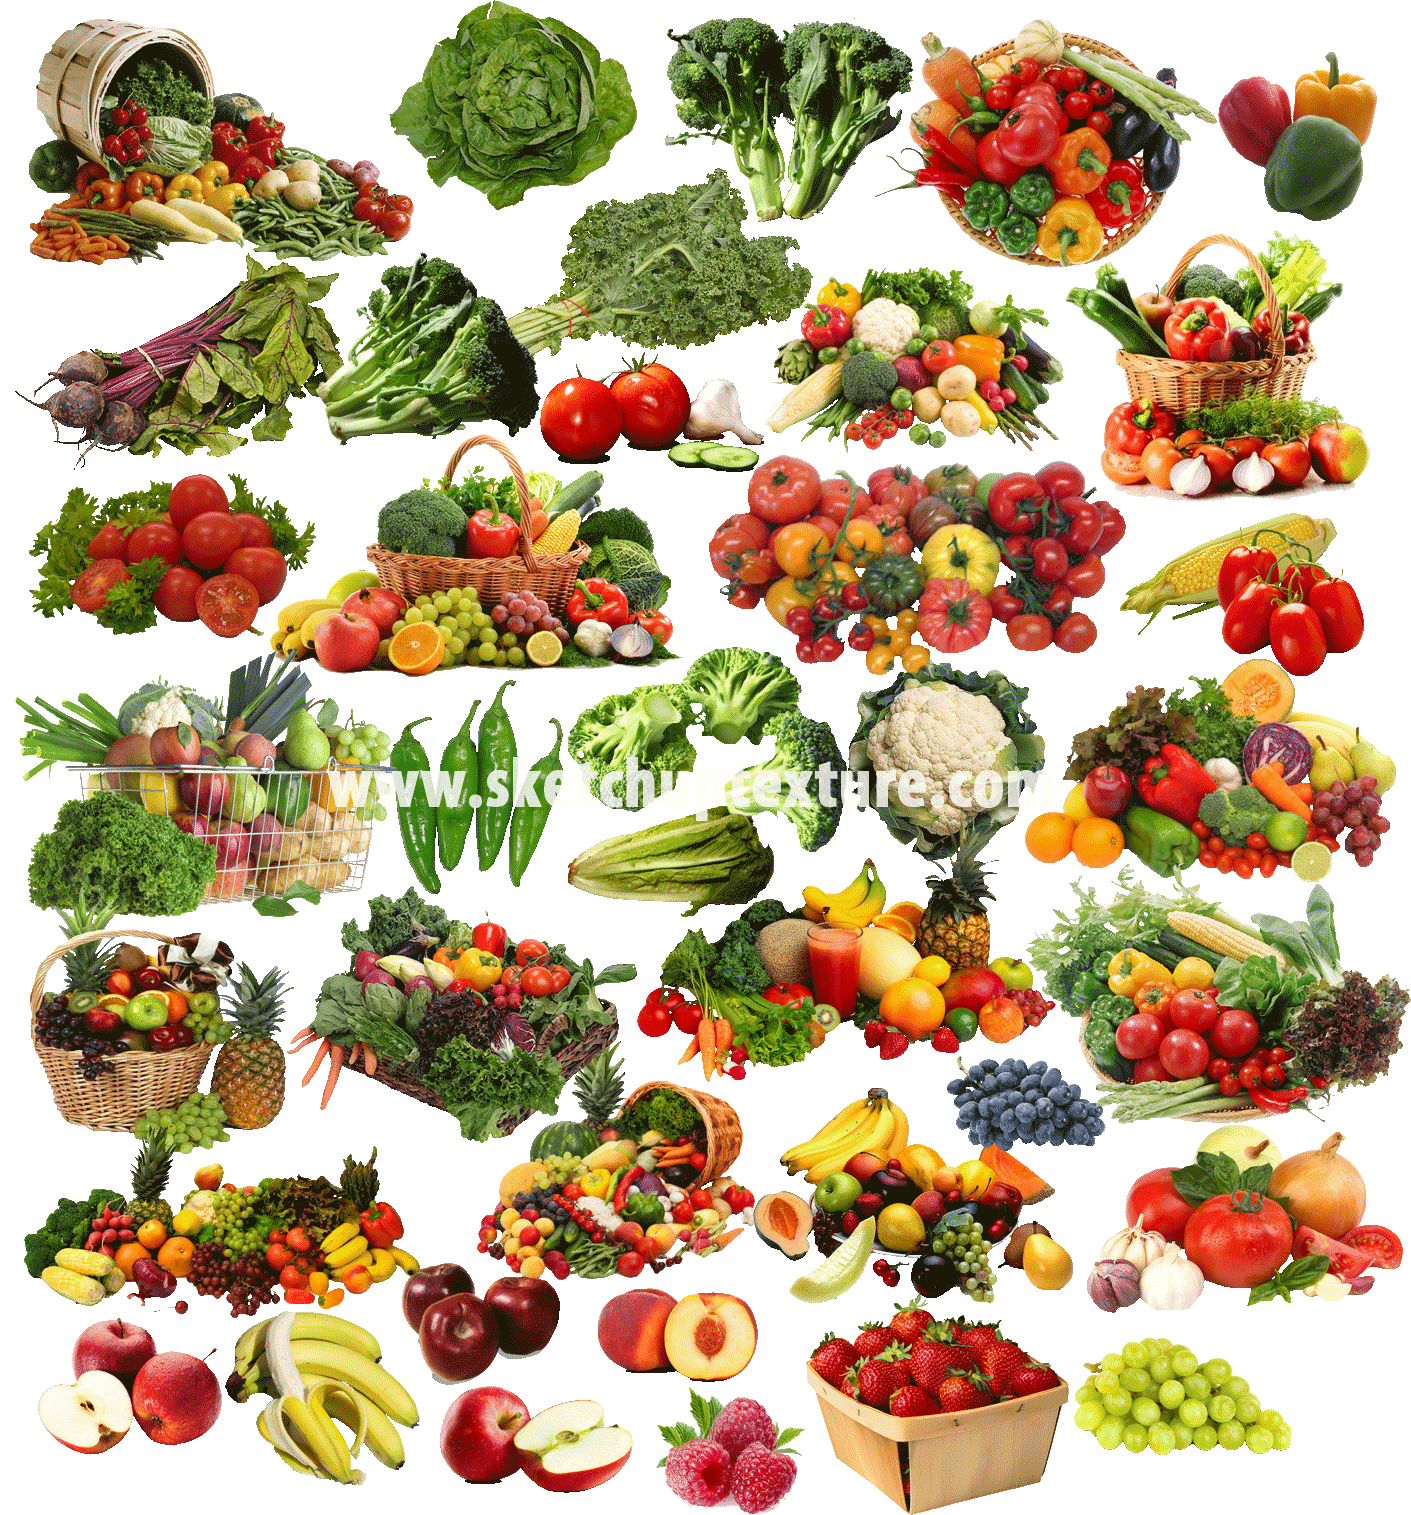 sketchup texture cut out vegetables and fruits pack